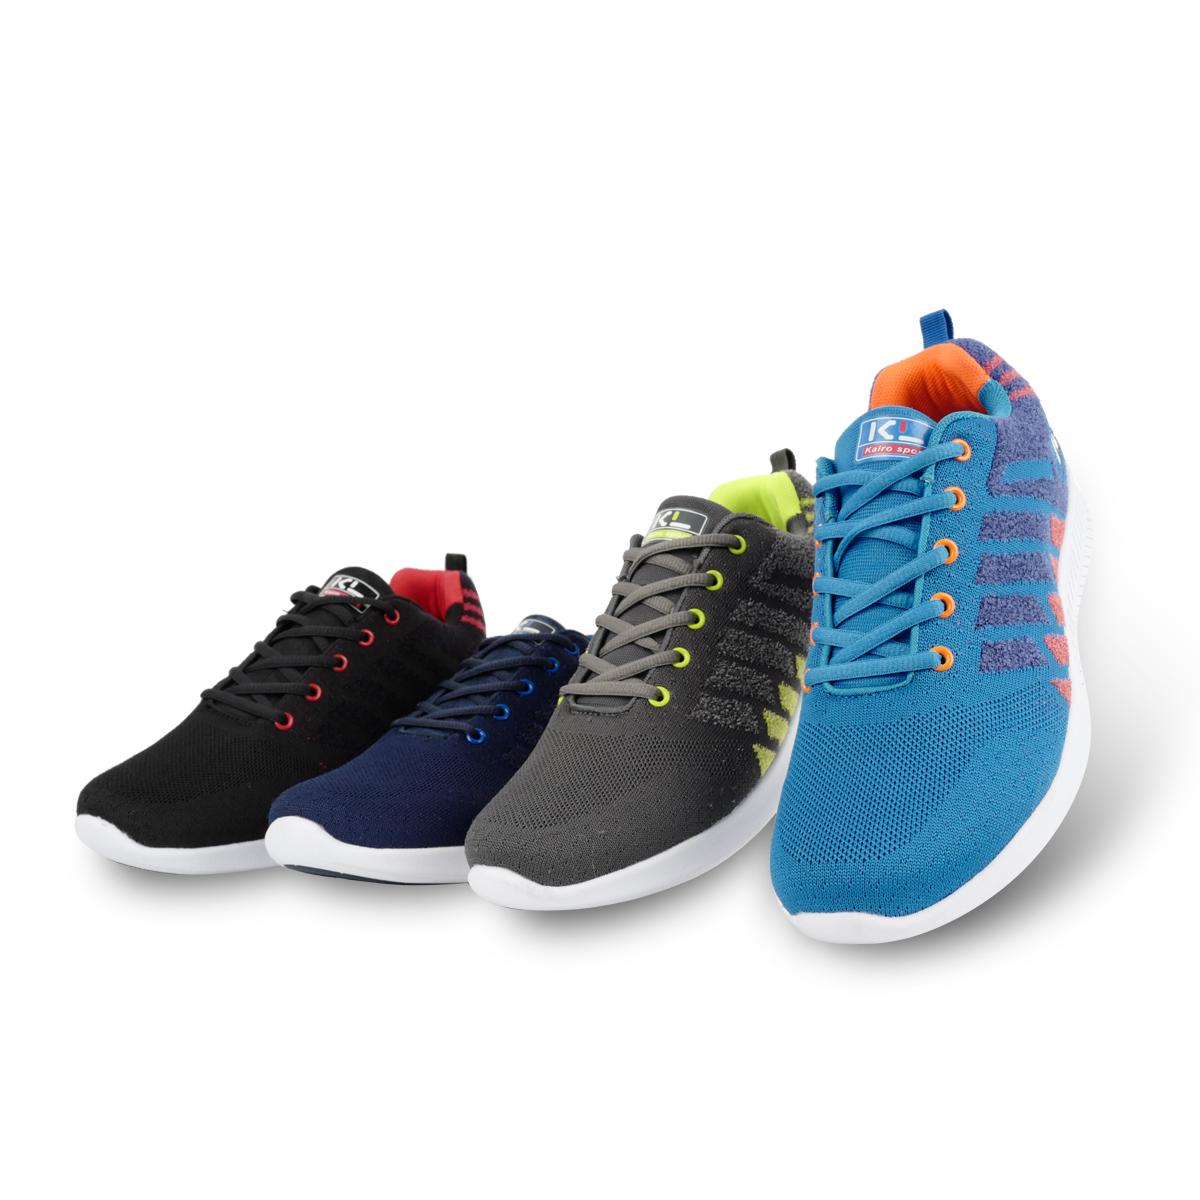 men men Made china and sport shoes running fashion in wholesale sneakers qx7wvCZ